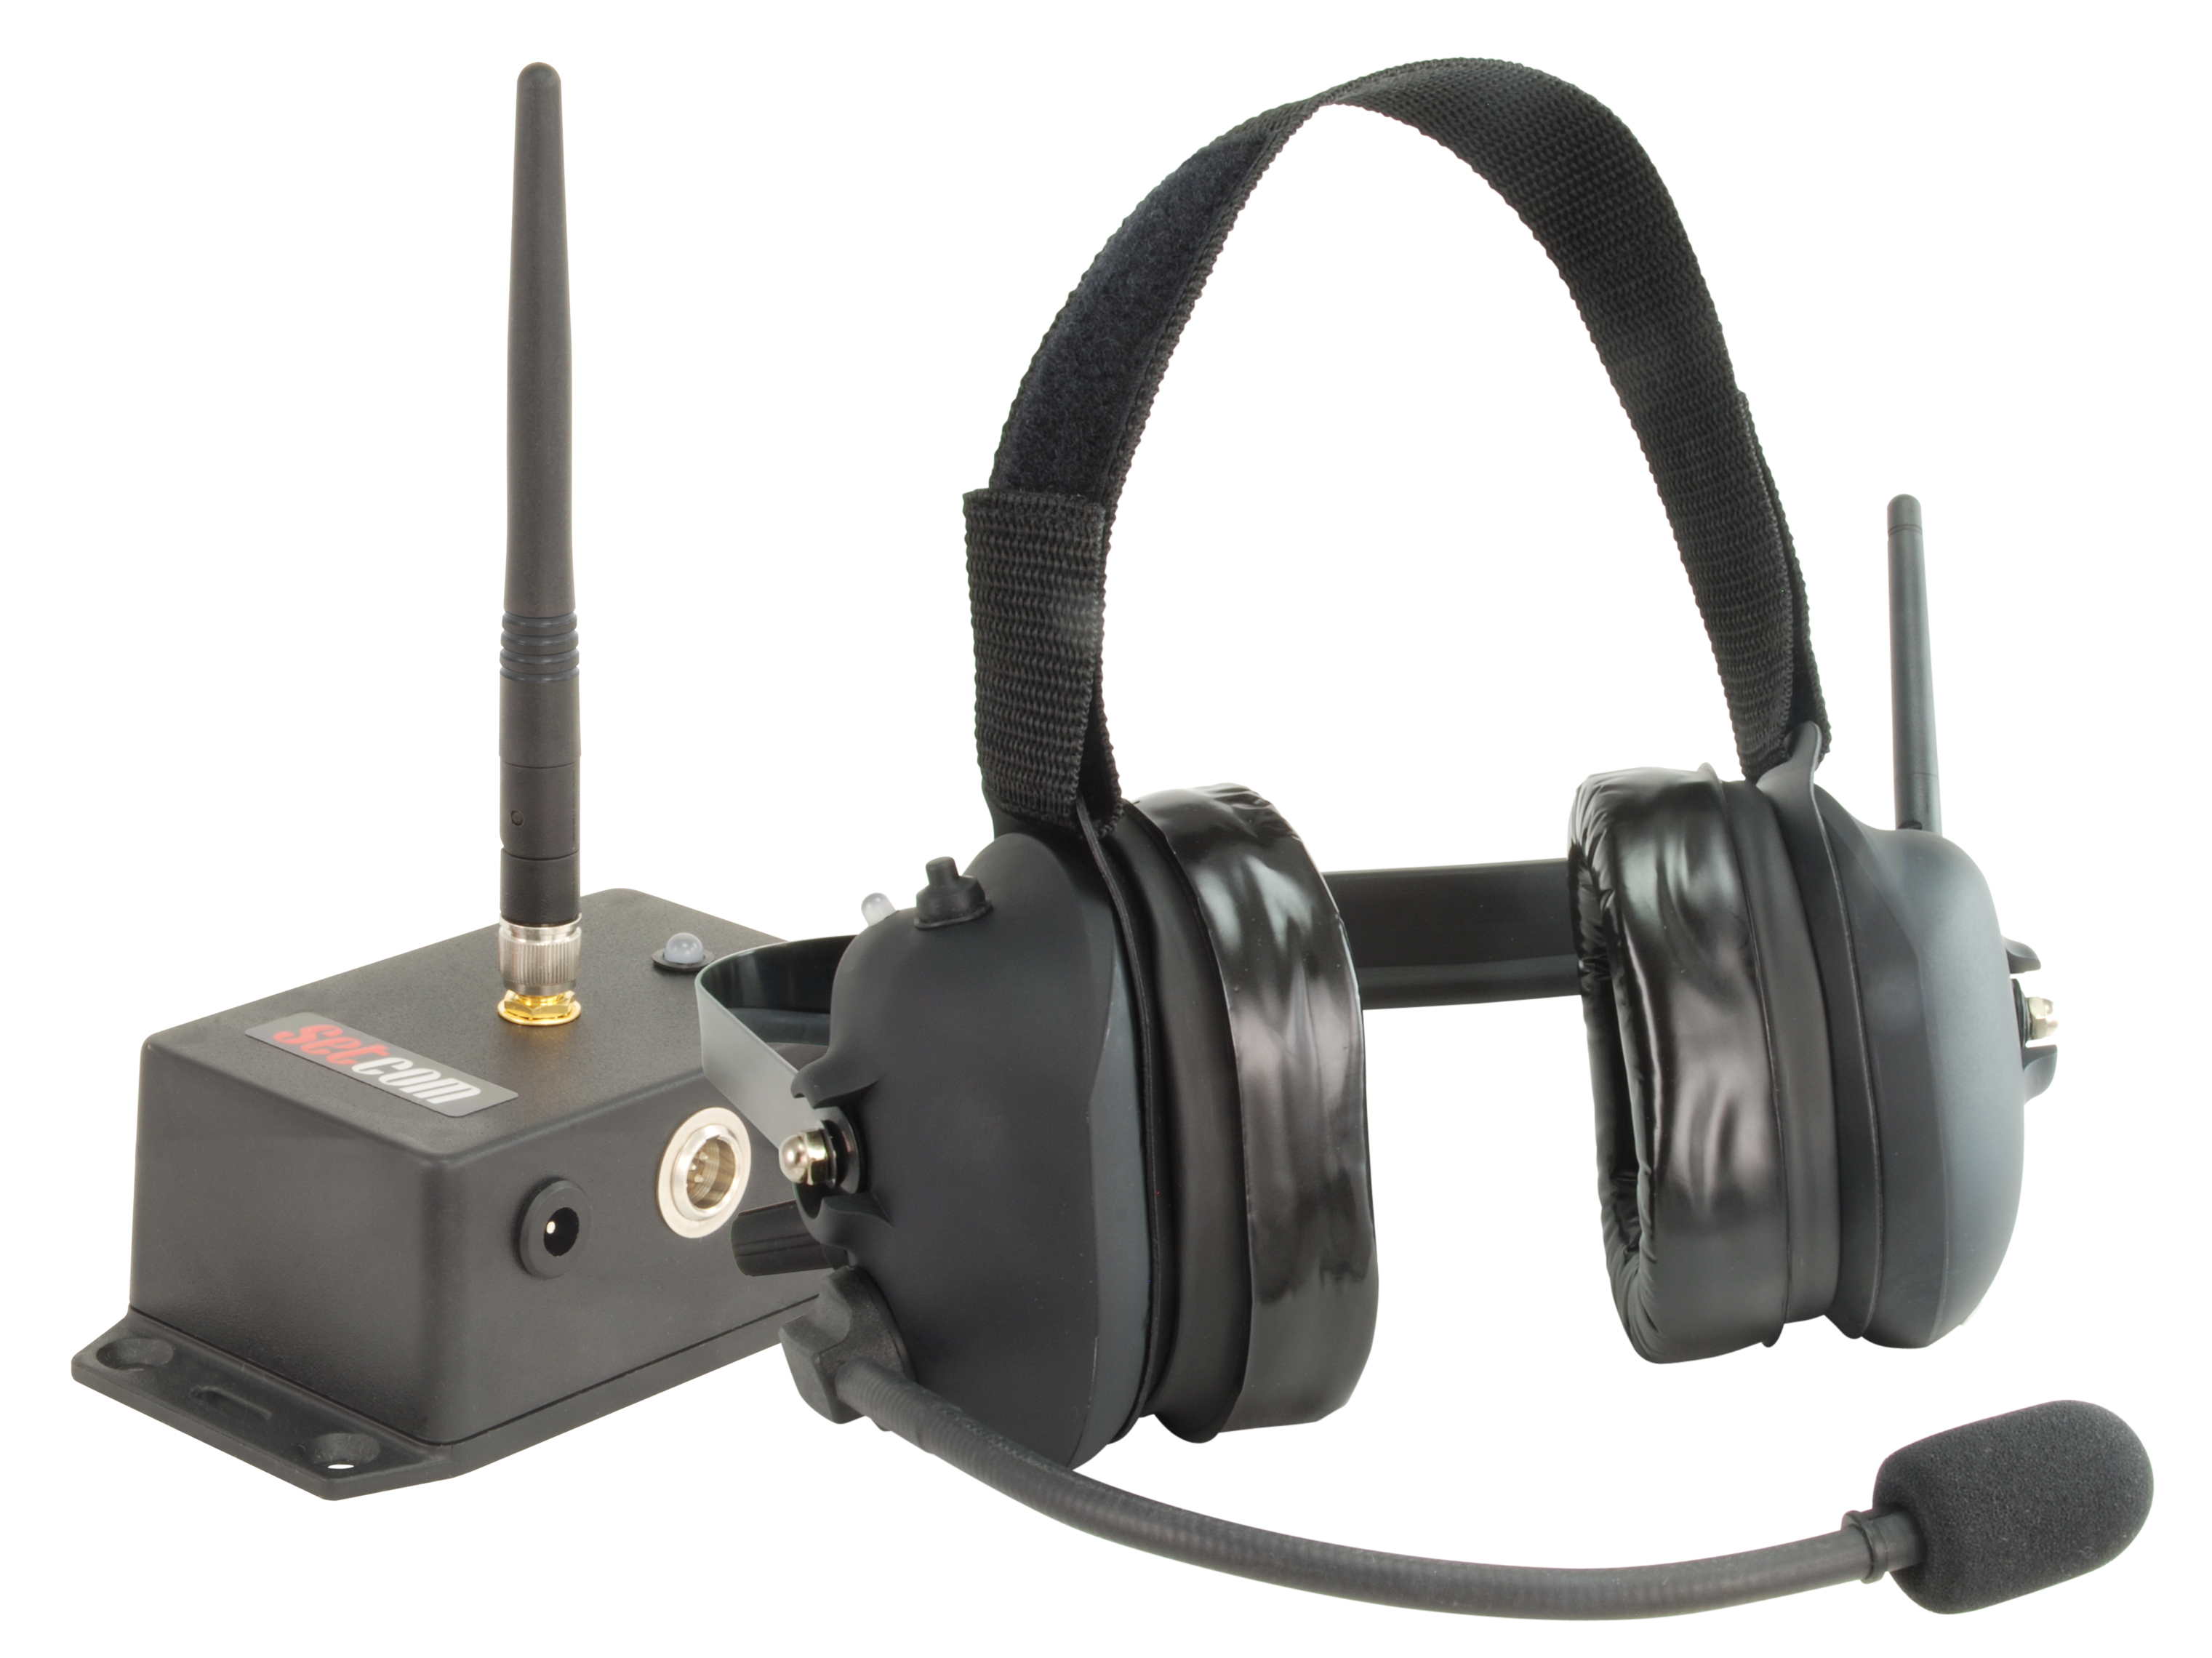 Setcom Releases The First Fire Wireless Headset With